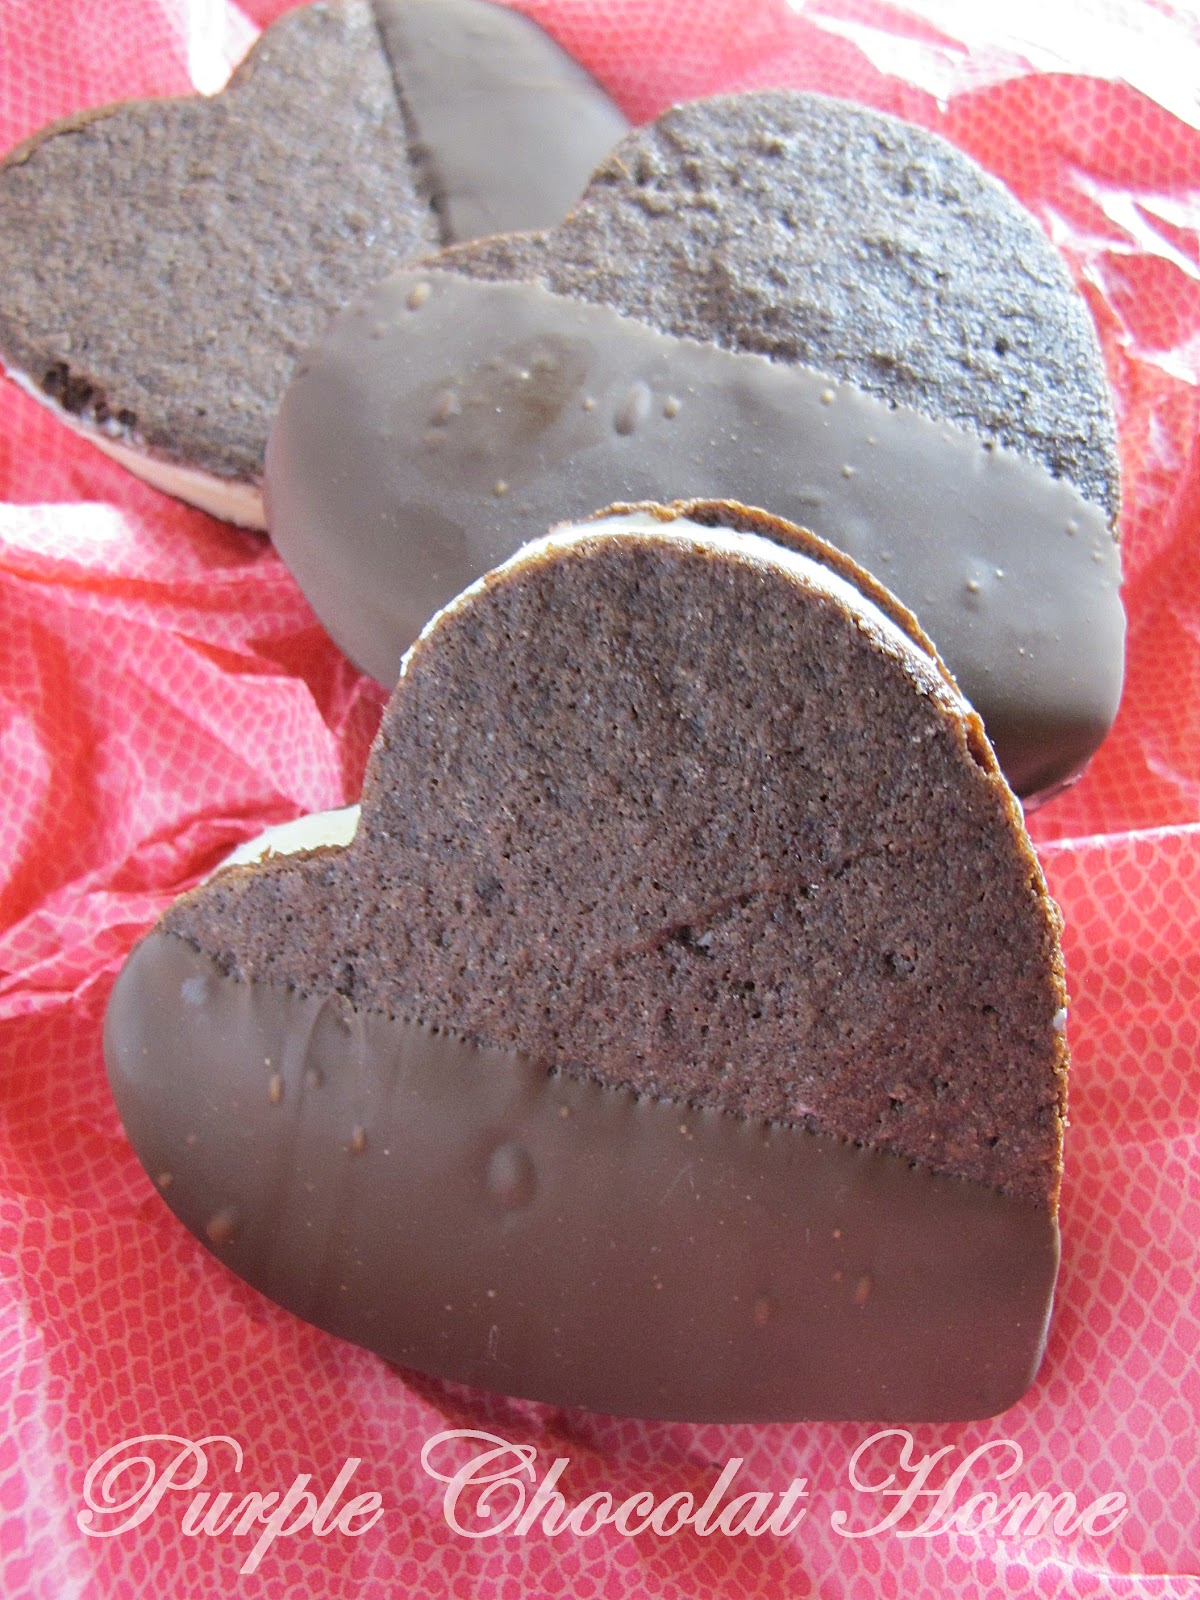 Purple Chocolat Home: Valentine's Ice Cream Sandwich Hearts